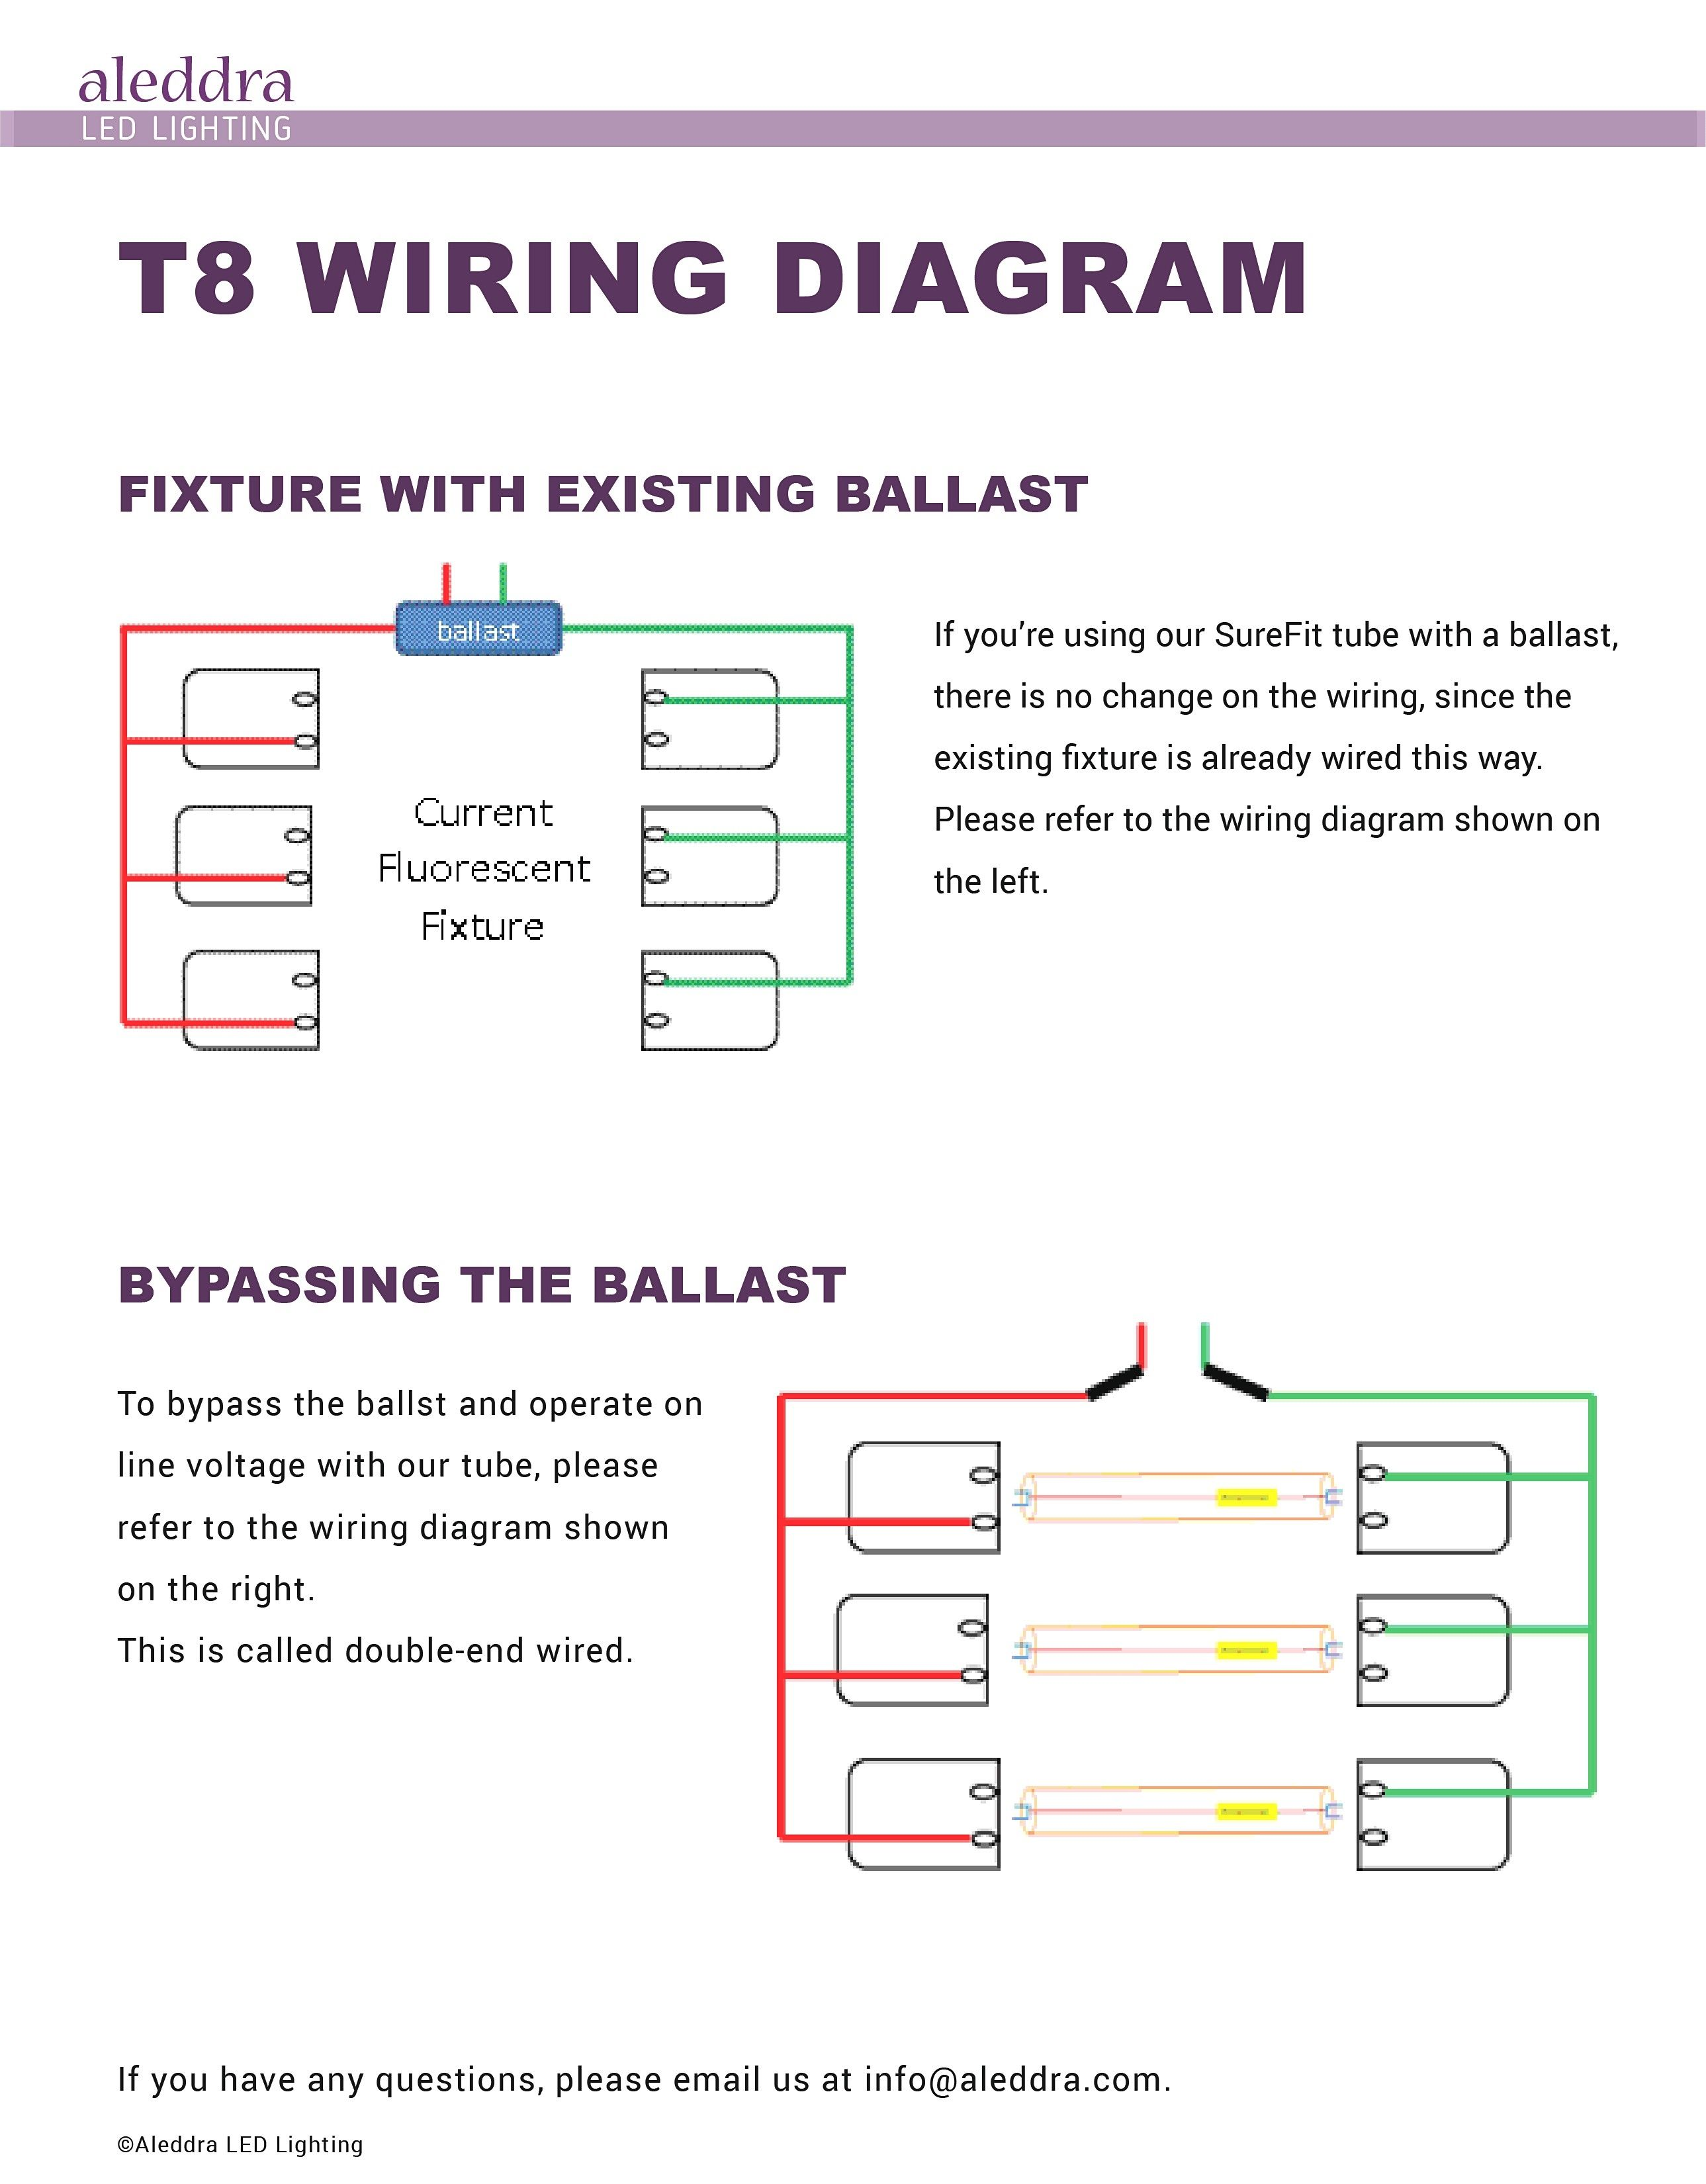 [DIAGRAM_5LK]  20 Complex Led Tube Wiring Diagram References | Led fluorescent tube, Led  fluorescent, Fluorescent tube | T8 Light Fixture Wiring Diagram |  | Pinterest